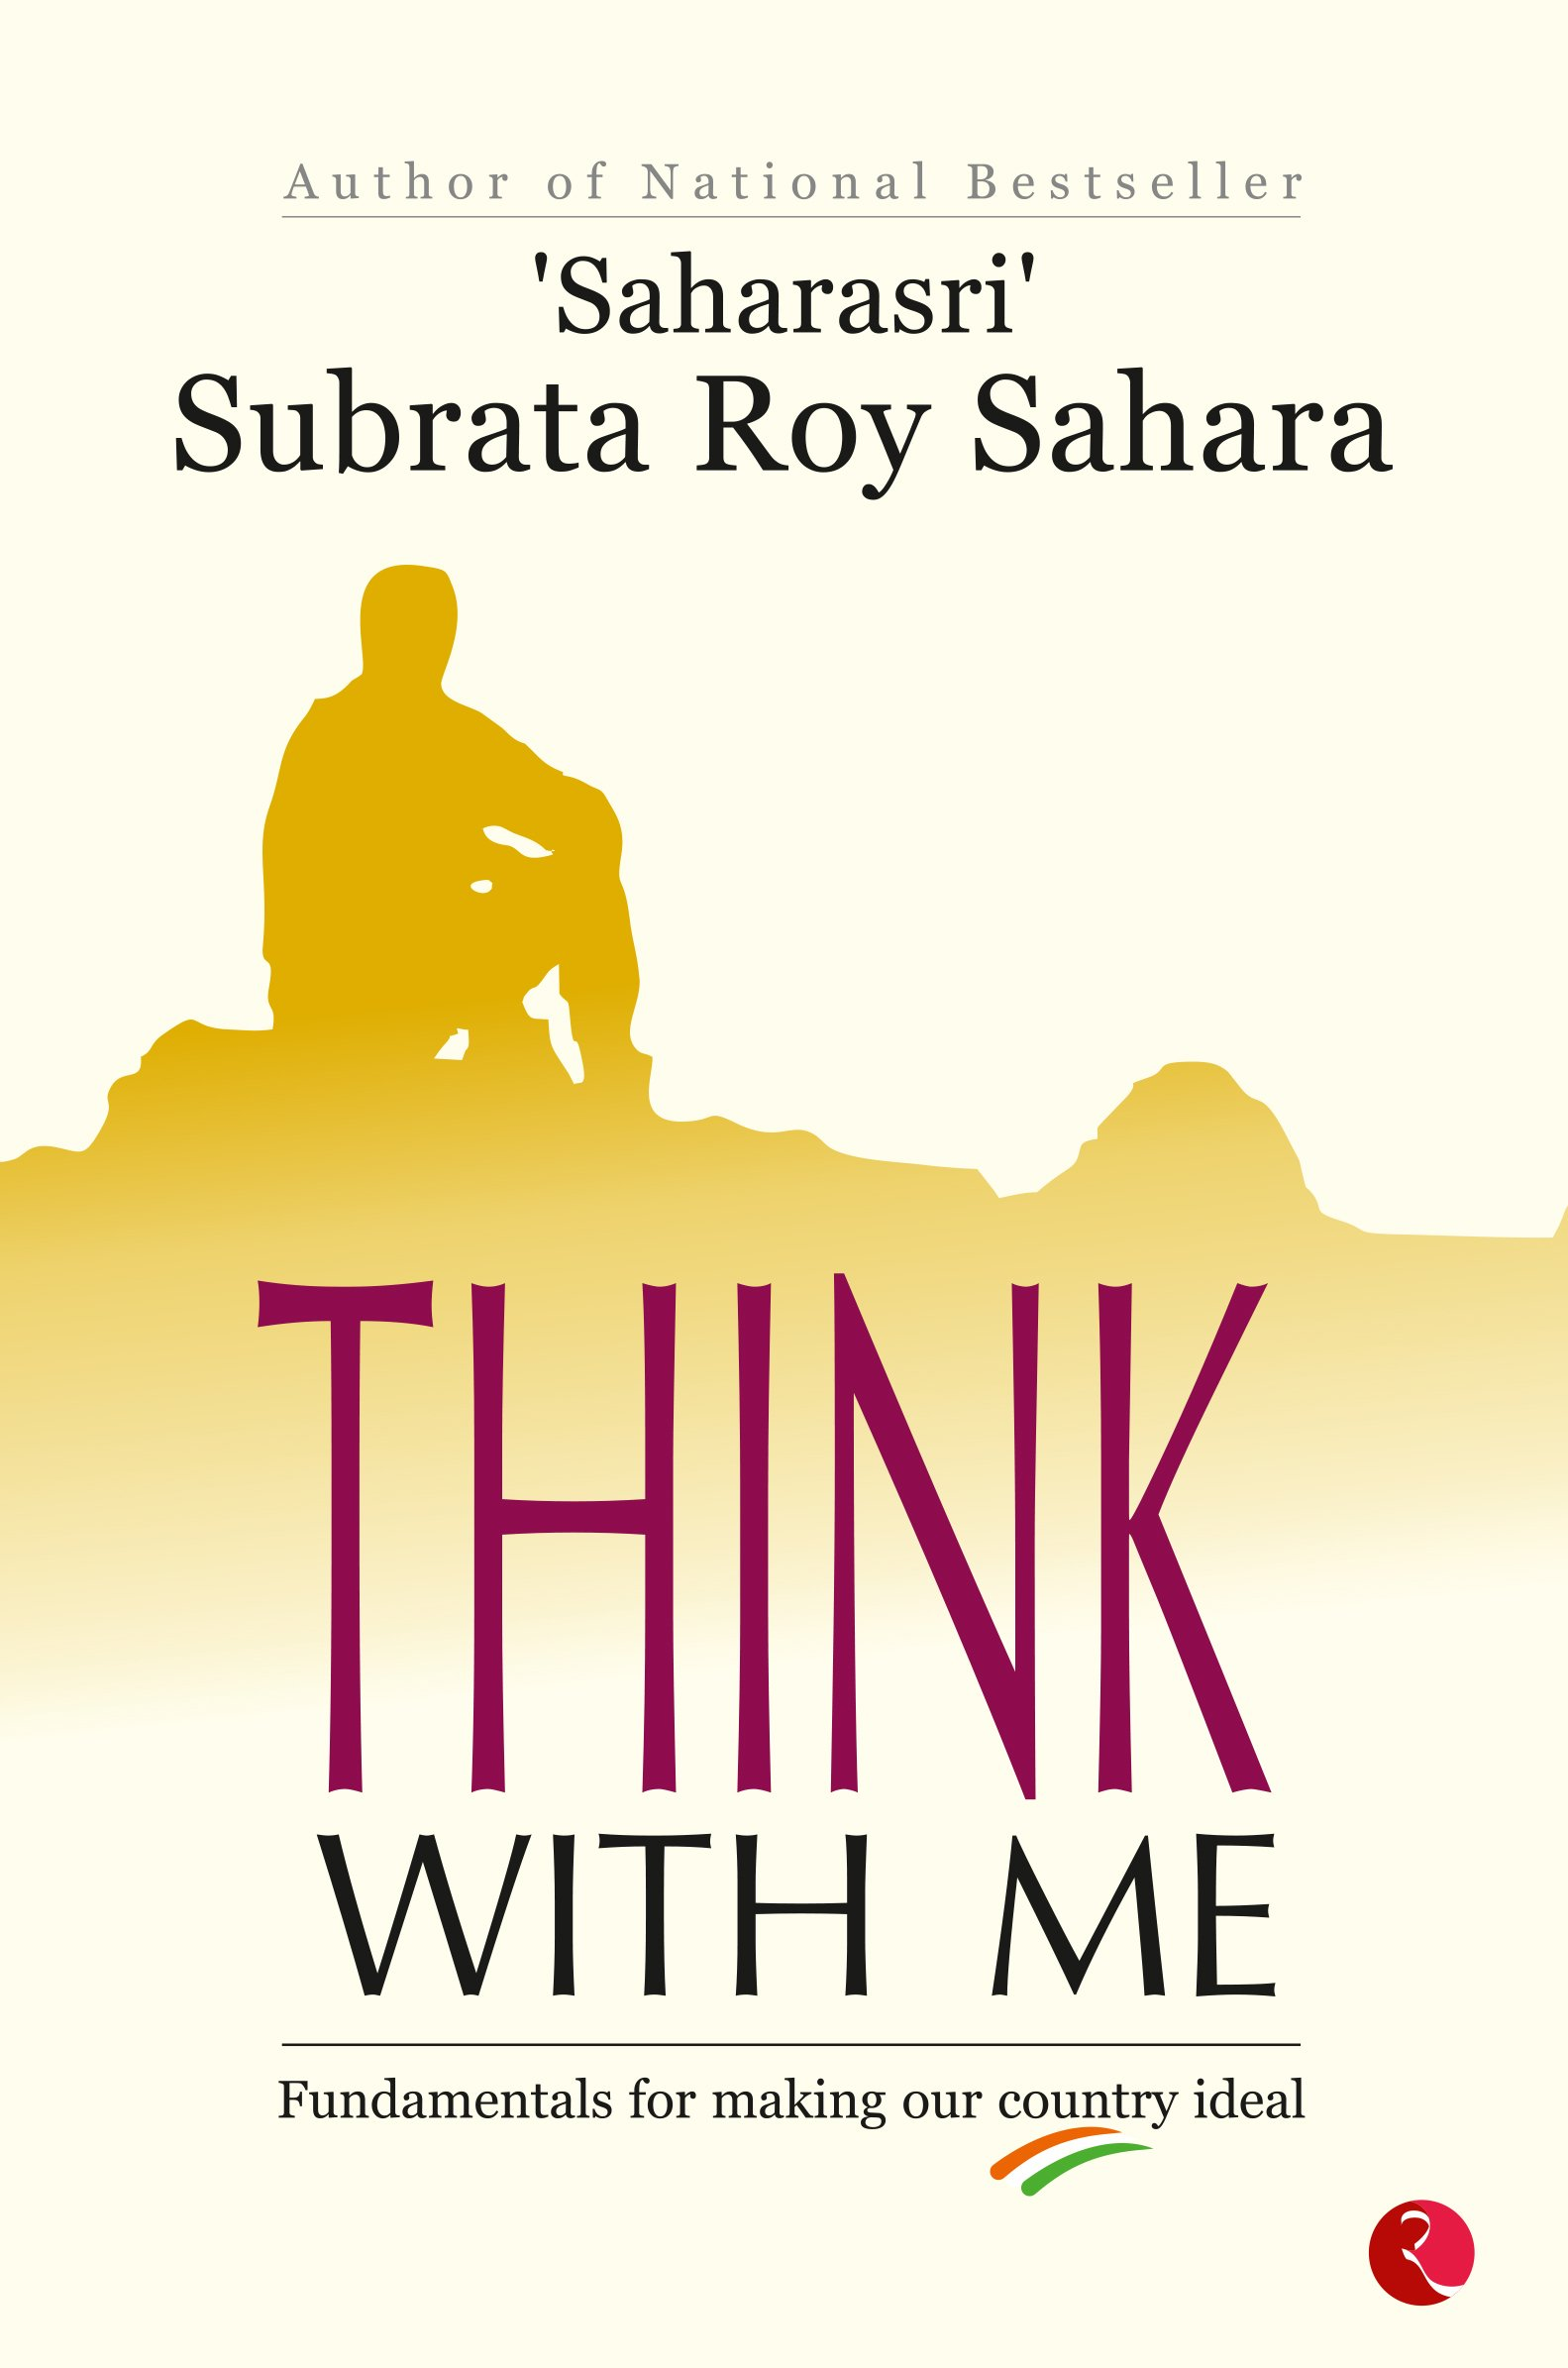 think withme